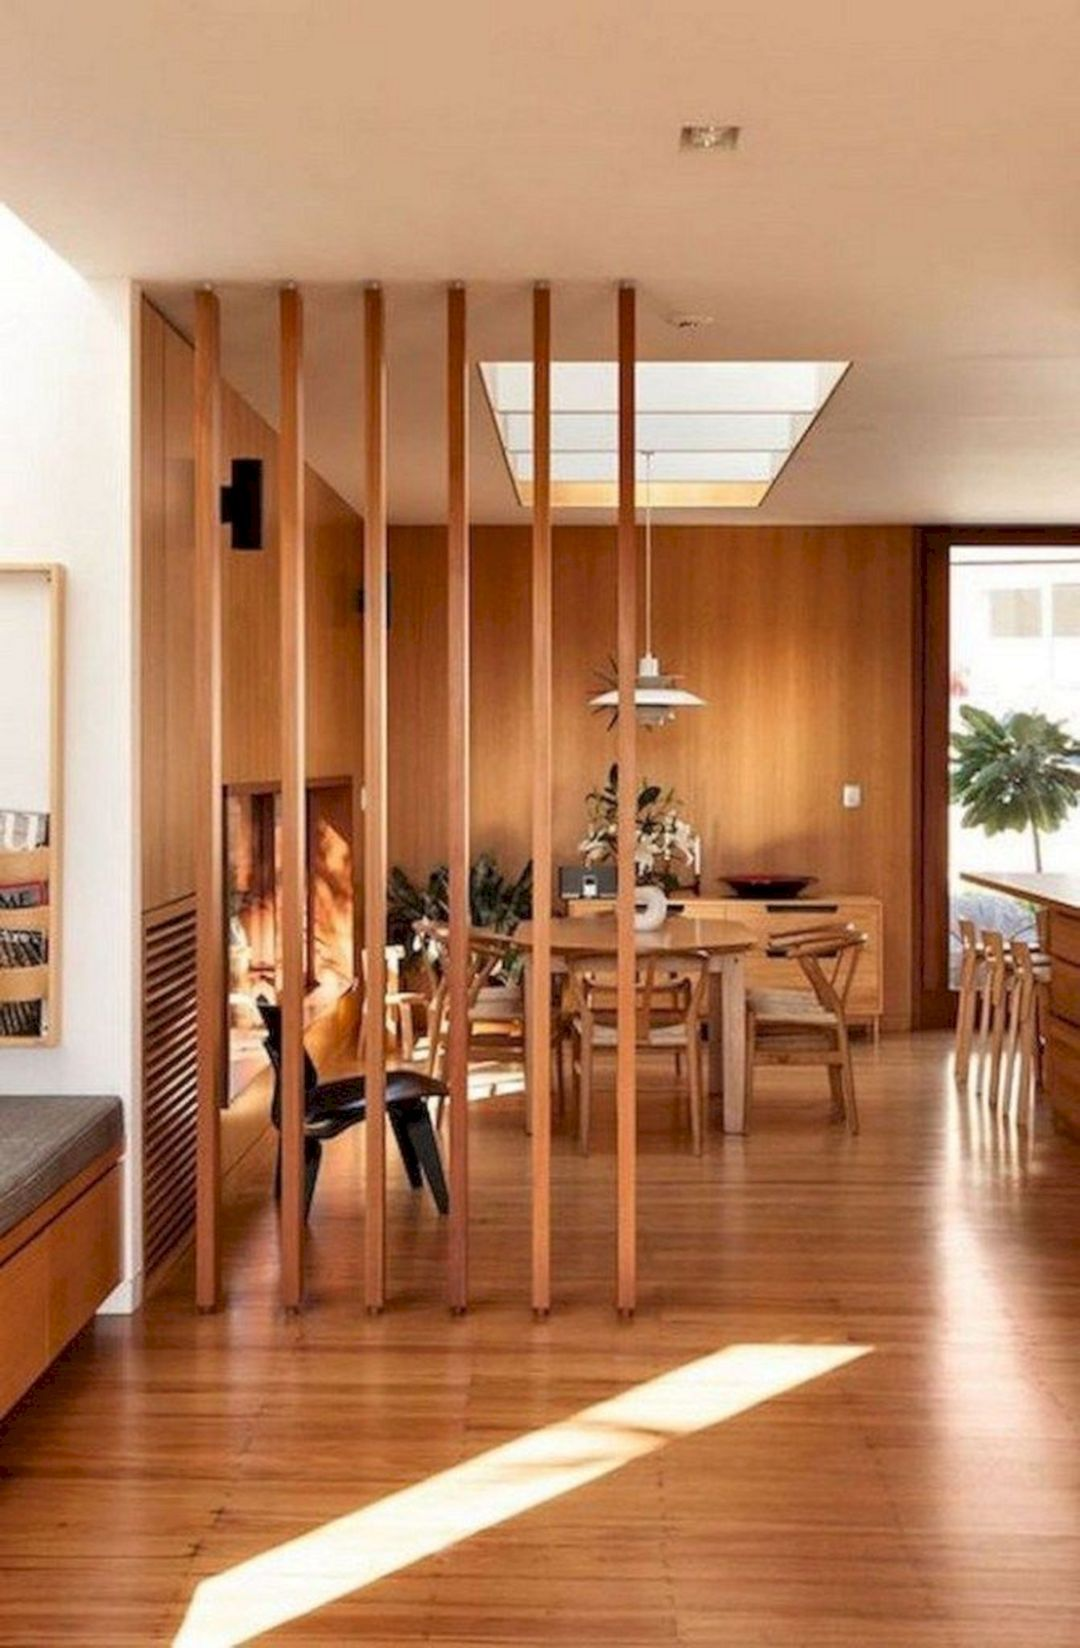 17 Modern Living Room Divider Ideas For Small Space Solutions At Home In 2020 Modern Room Divider Small Room Divider Living Room Divider